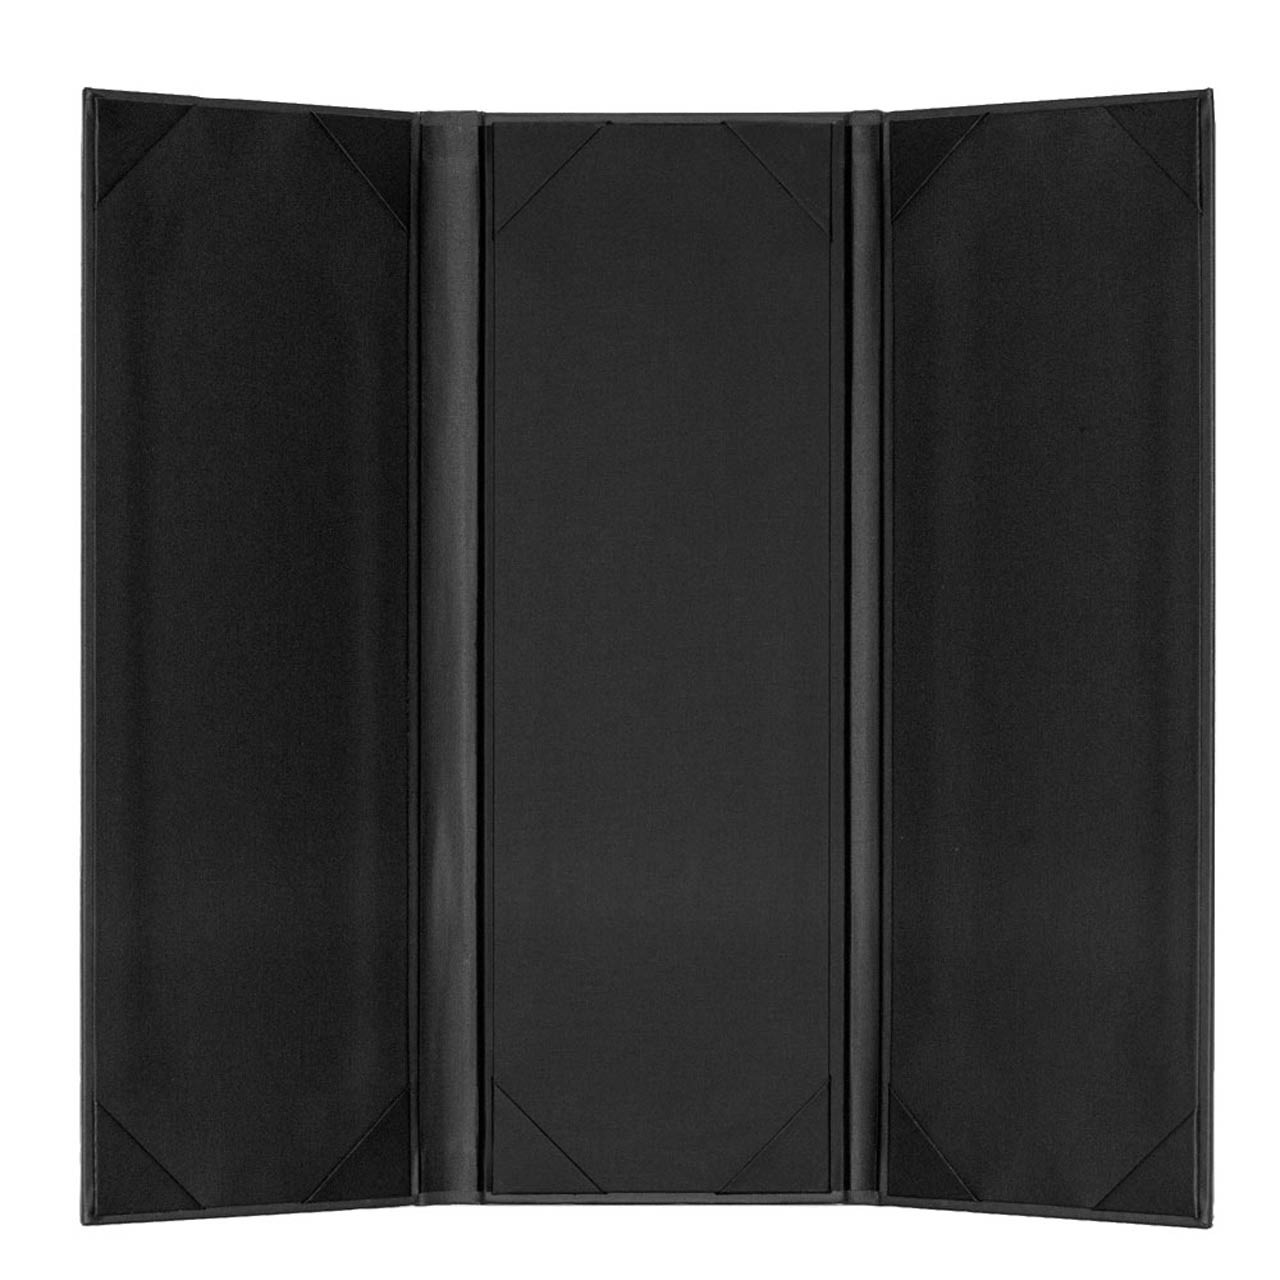 3 panel, trifold (inside)